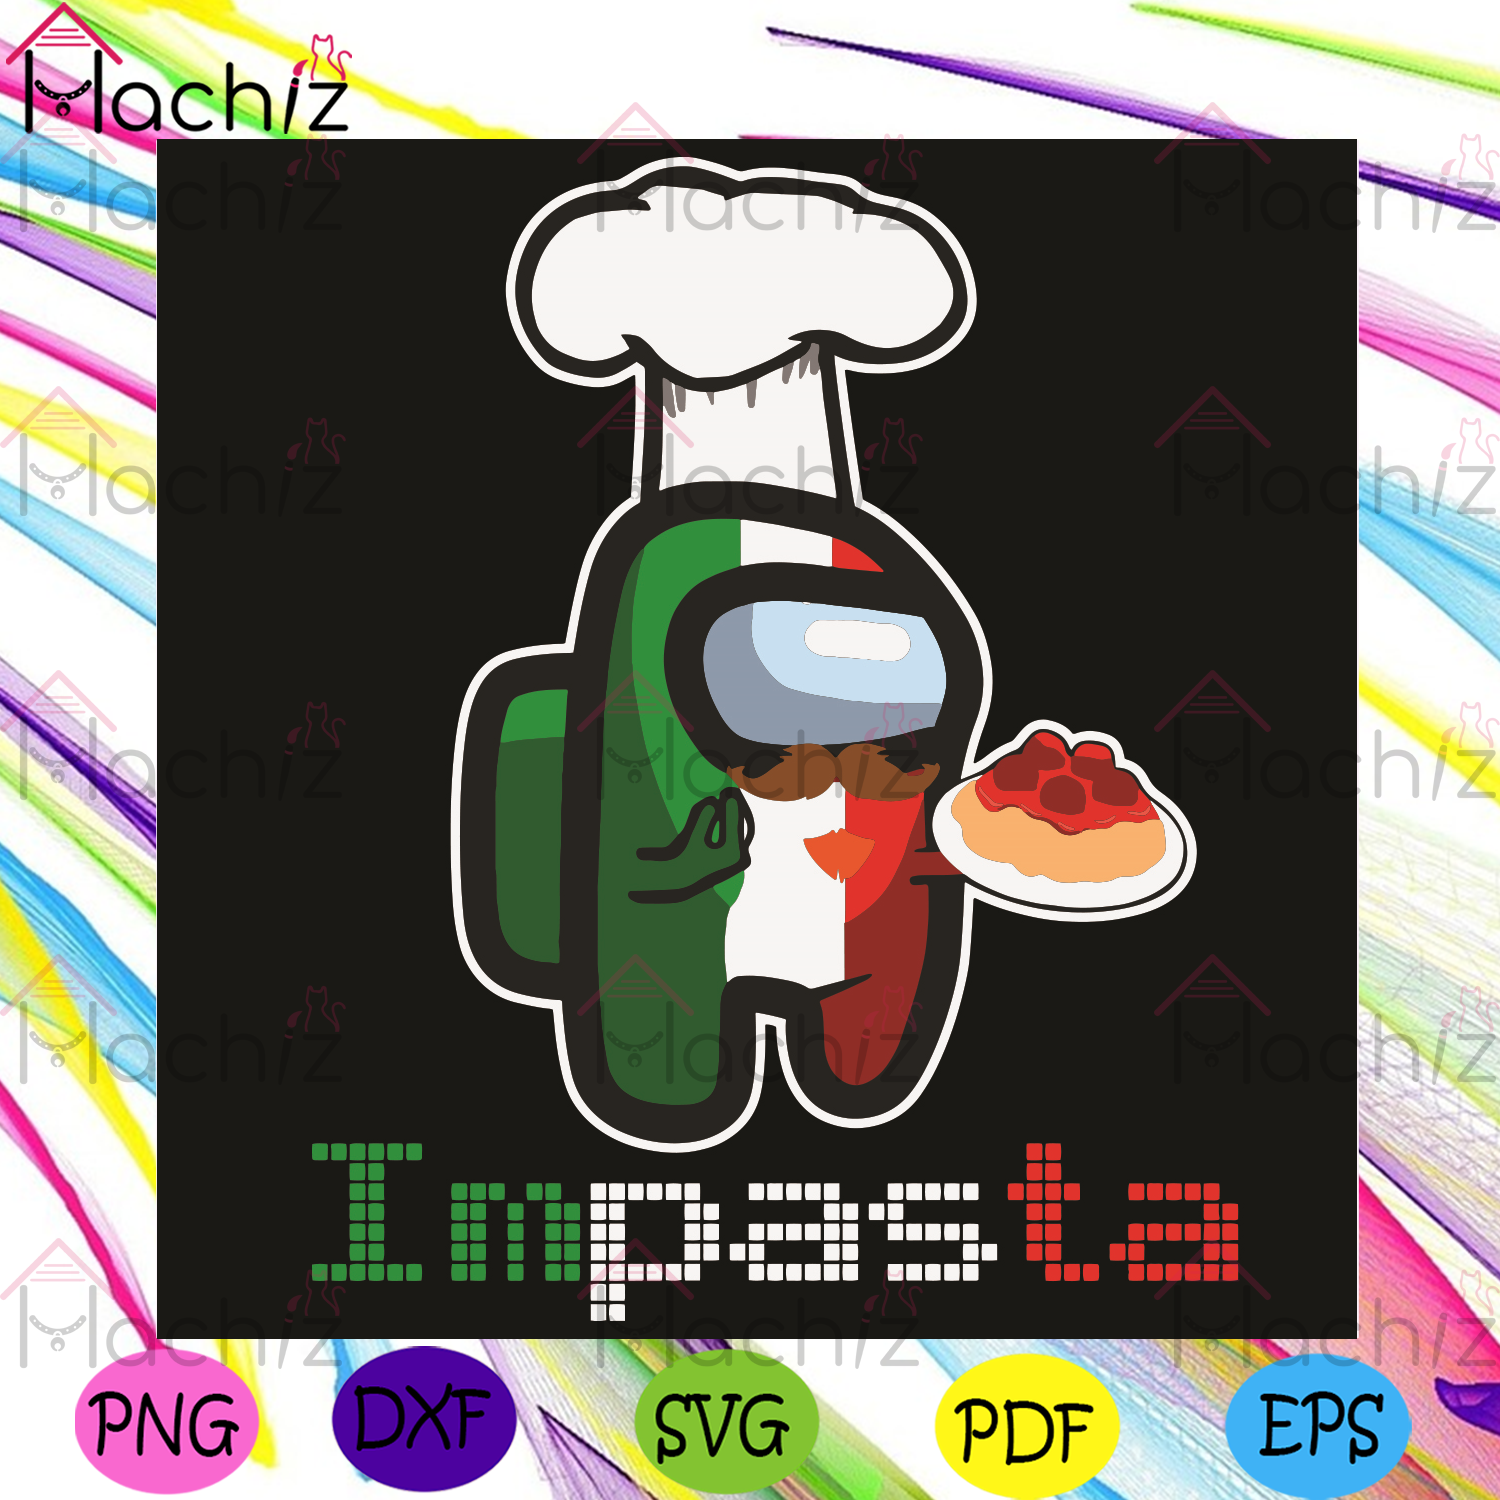 Impasta Svg, Trending Svg, Among Us Svg, Italian Pasta Svg, Impostor Svg, Chef svg, Crewmate Svg, Italian Pasta Lovers Svg, Pasta Svg, Pasta Noodle Svg, Sus Svg, Among Us Characters Svg, Among Us Lovers, Among Us Gifts Svg